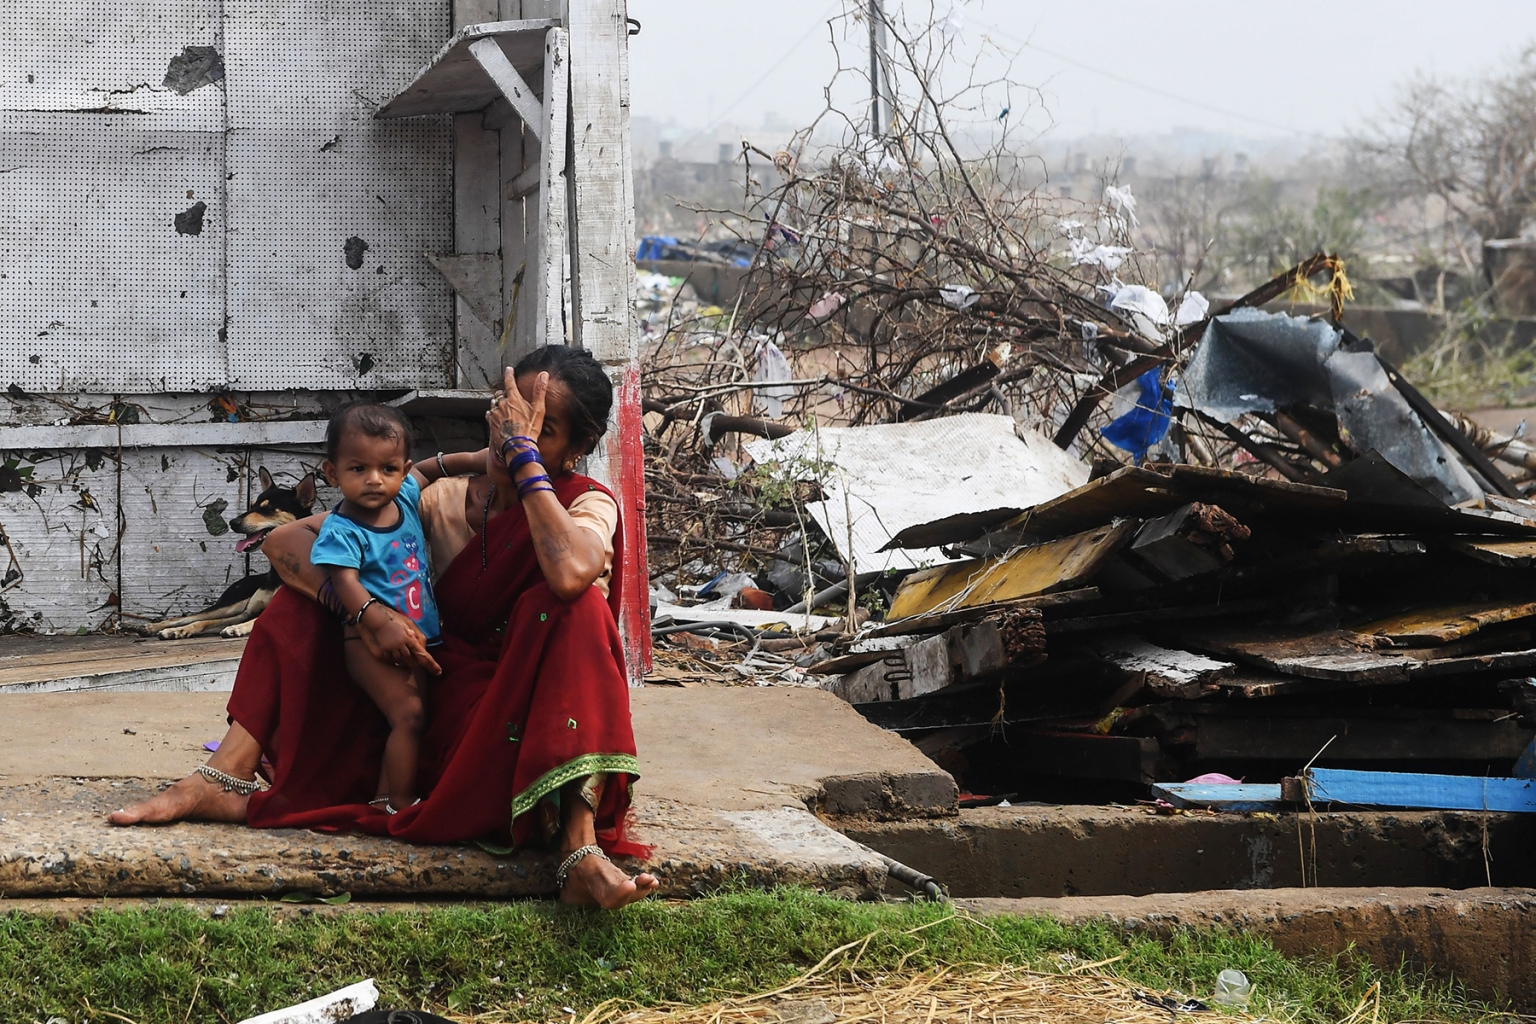 An Indian woman sits with her child next to storm-damaged buildings in Puri in the eastern Indian state of Odisha on May 4 after Cyclone Fani swept through the area. DIBYANGSHU SARKAR/AFP/Getty Images